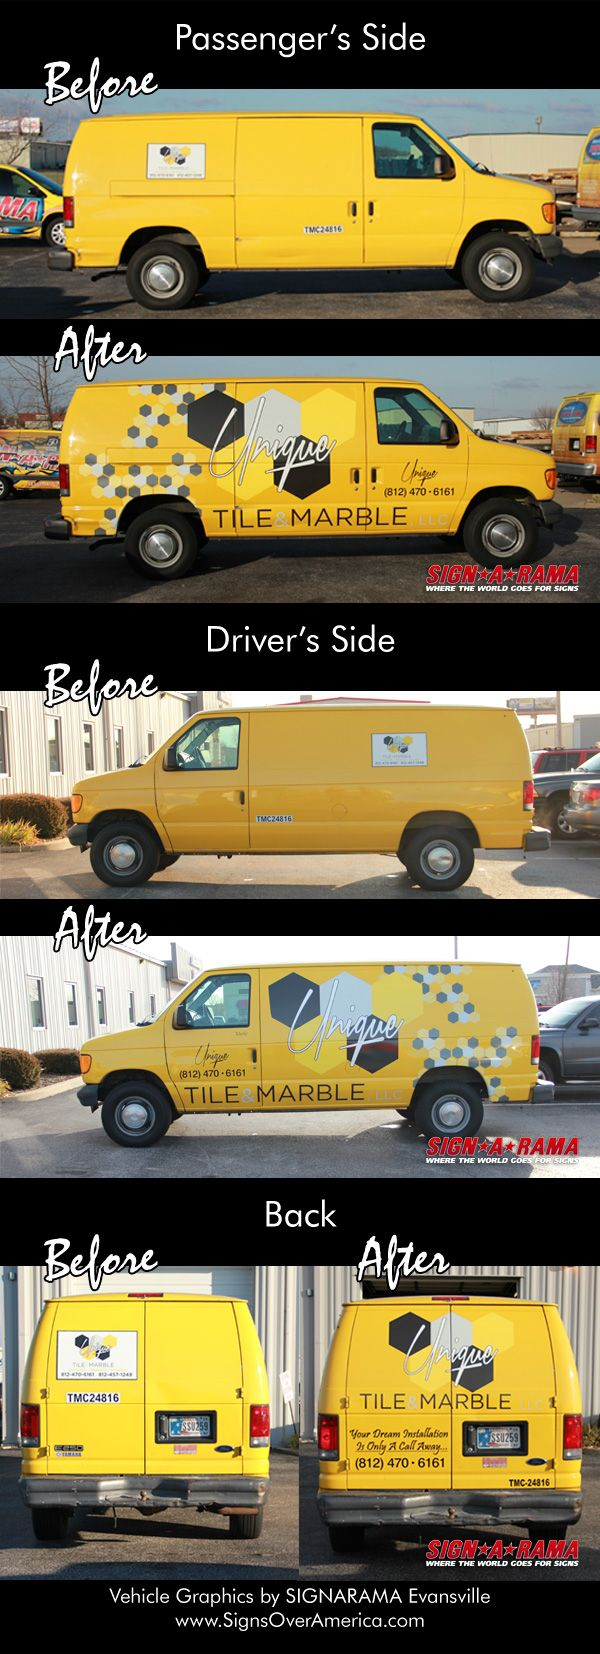 Before and After Vehicle Graphics for Unique Tile and Marble by SIGNARAMA Evansville.